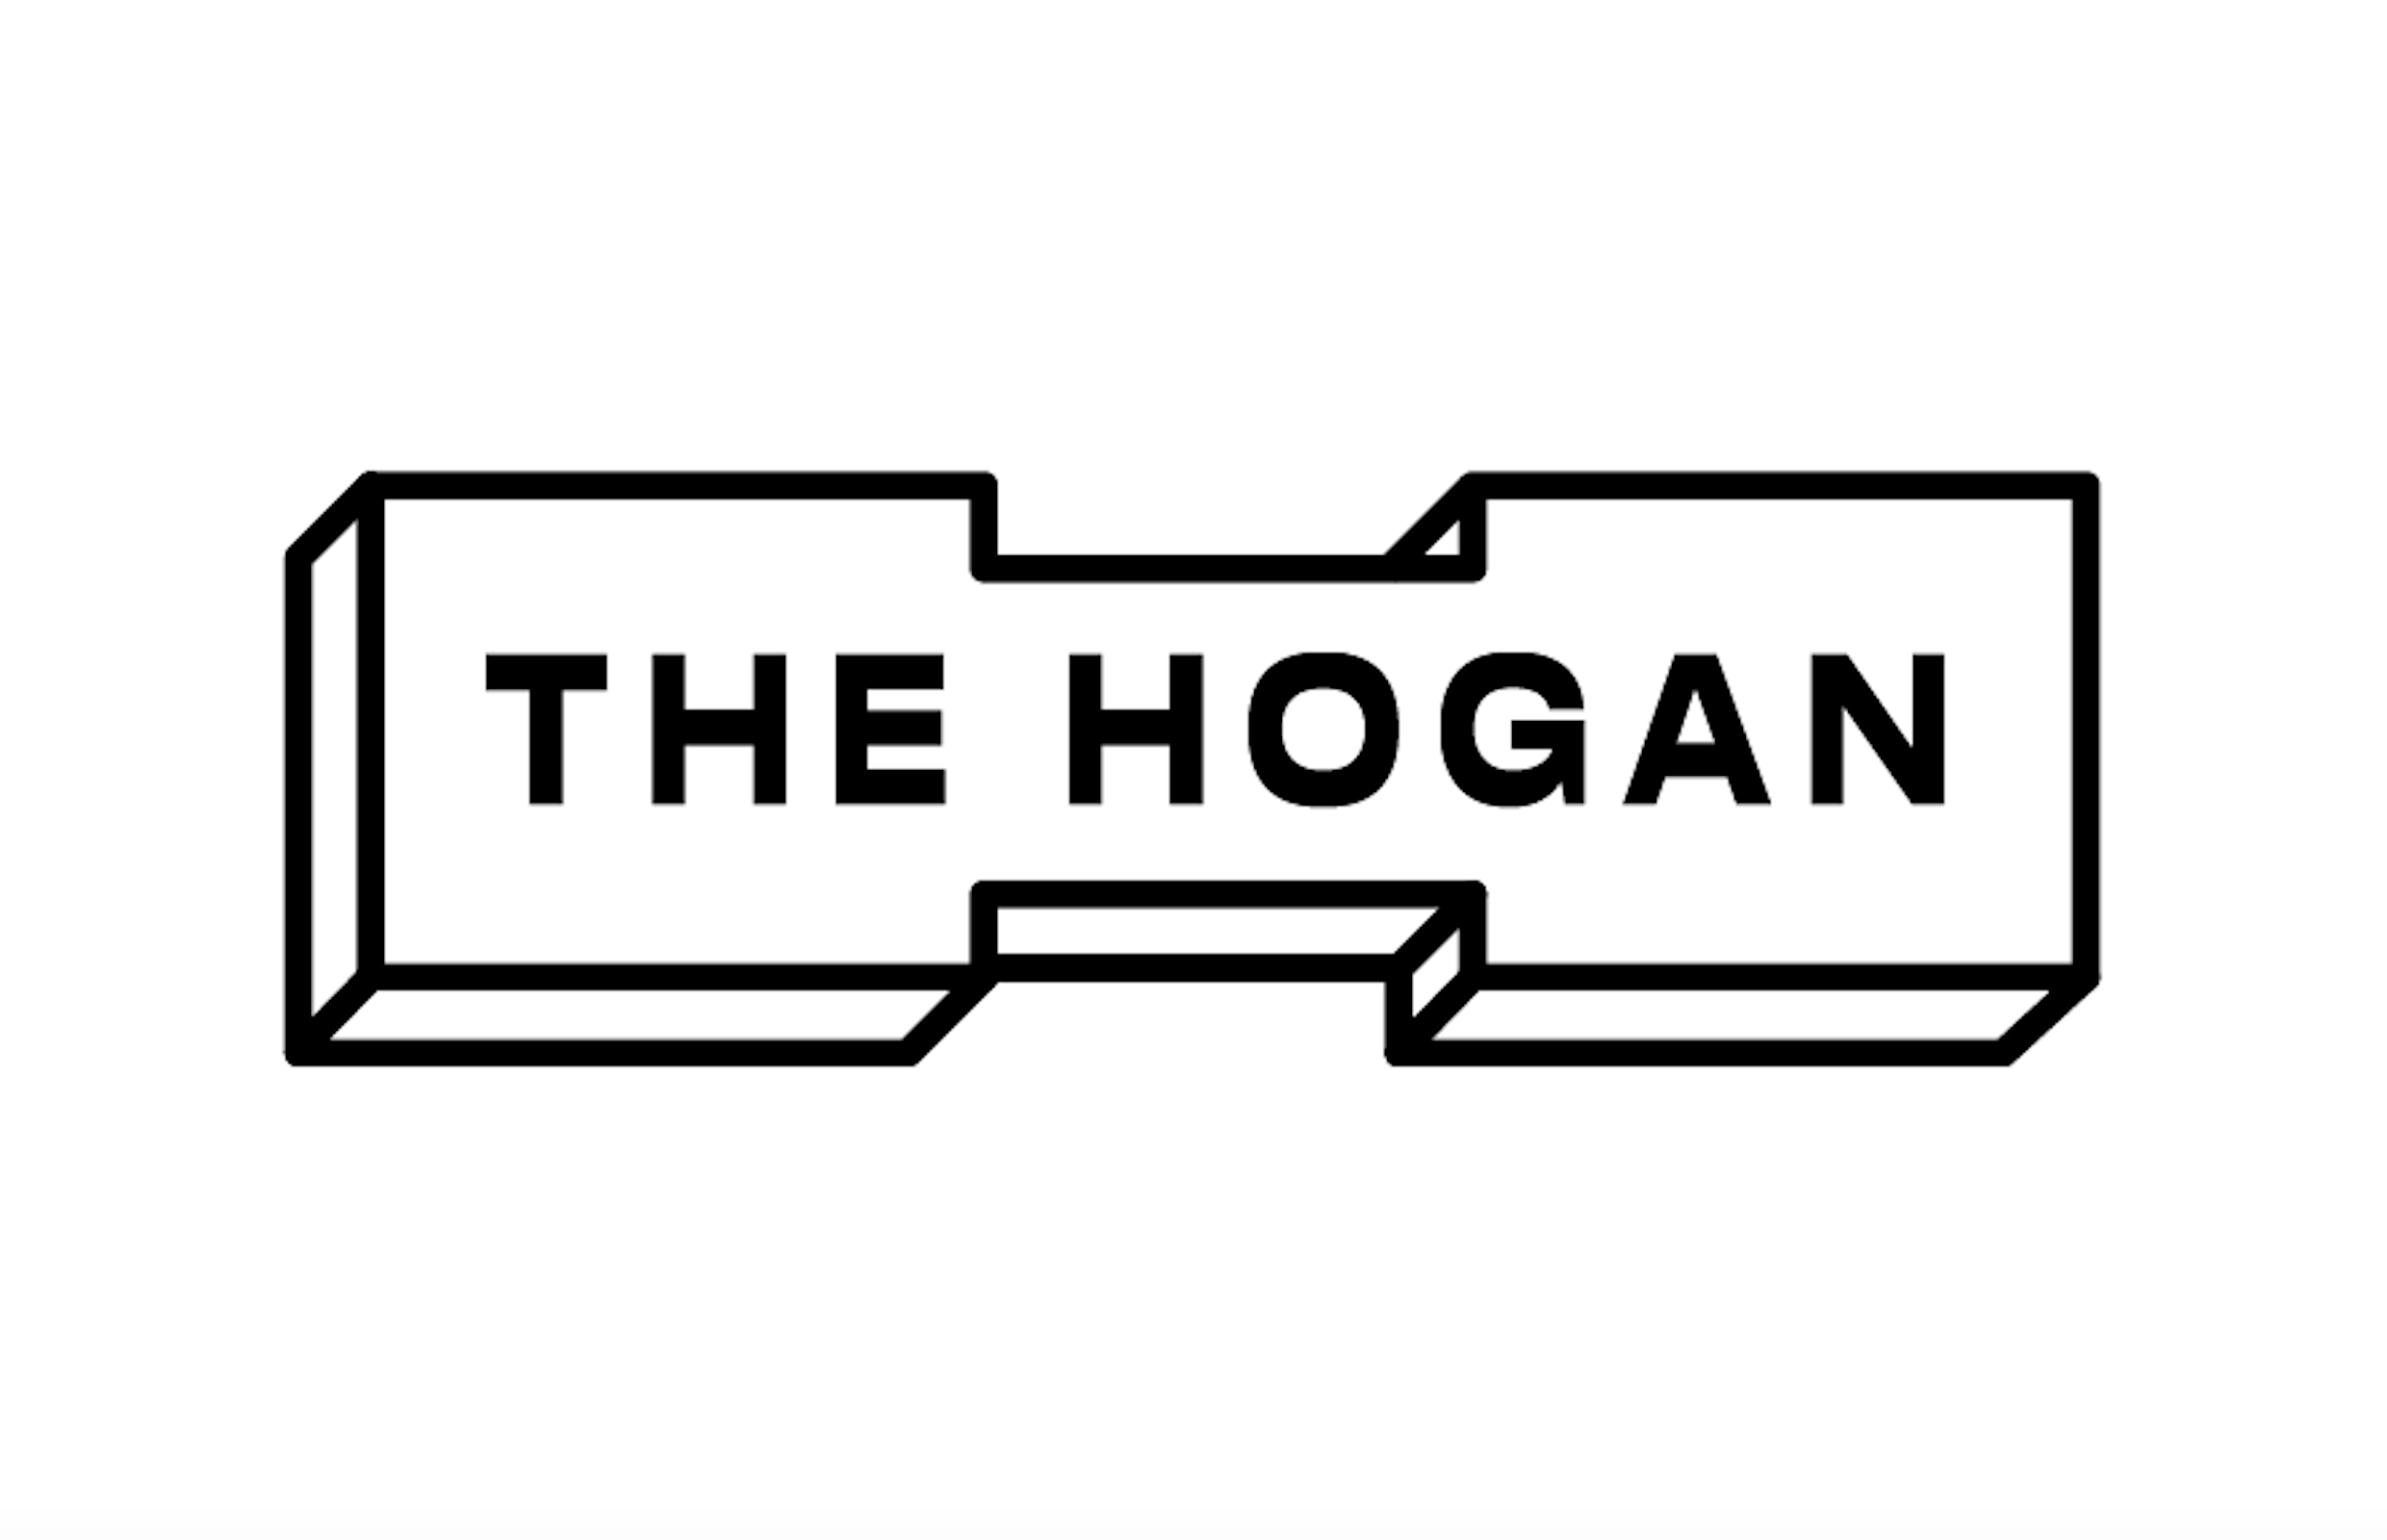 Sean Hogan Launches Music Supervision Company 'THE HOGAN'